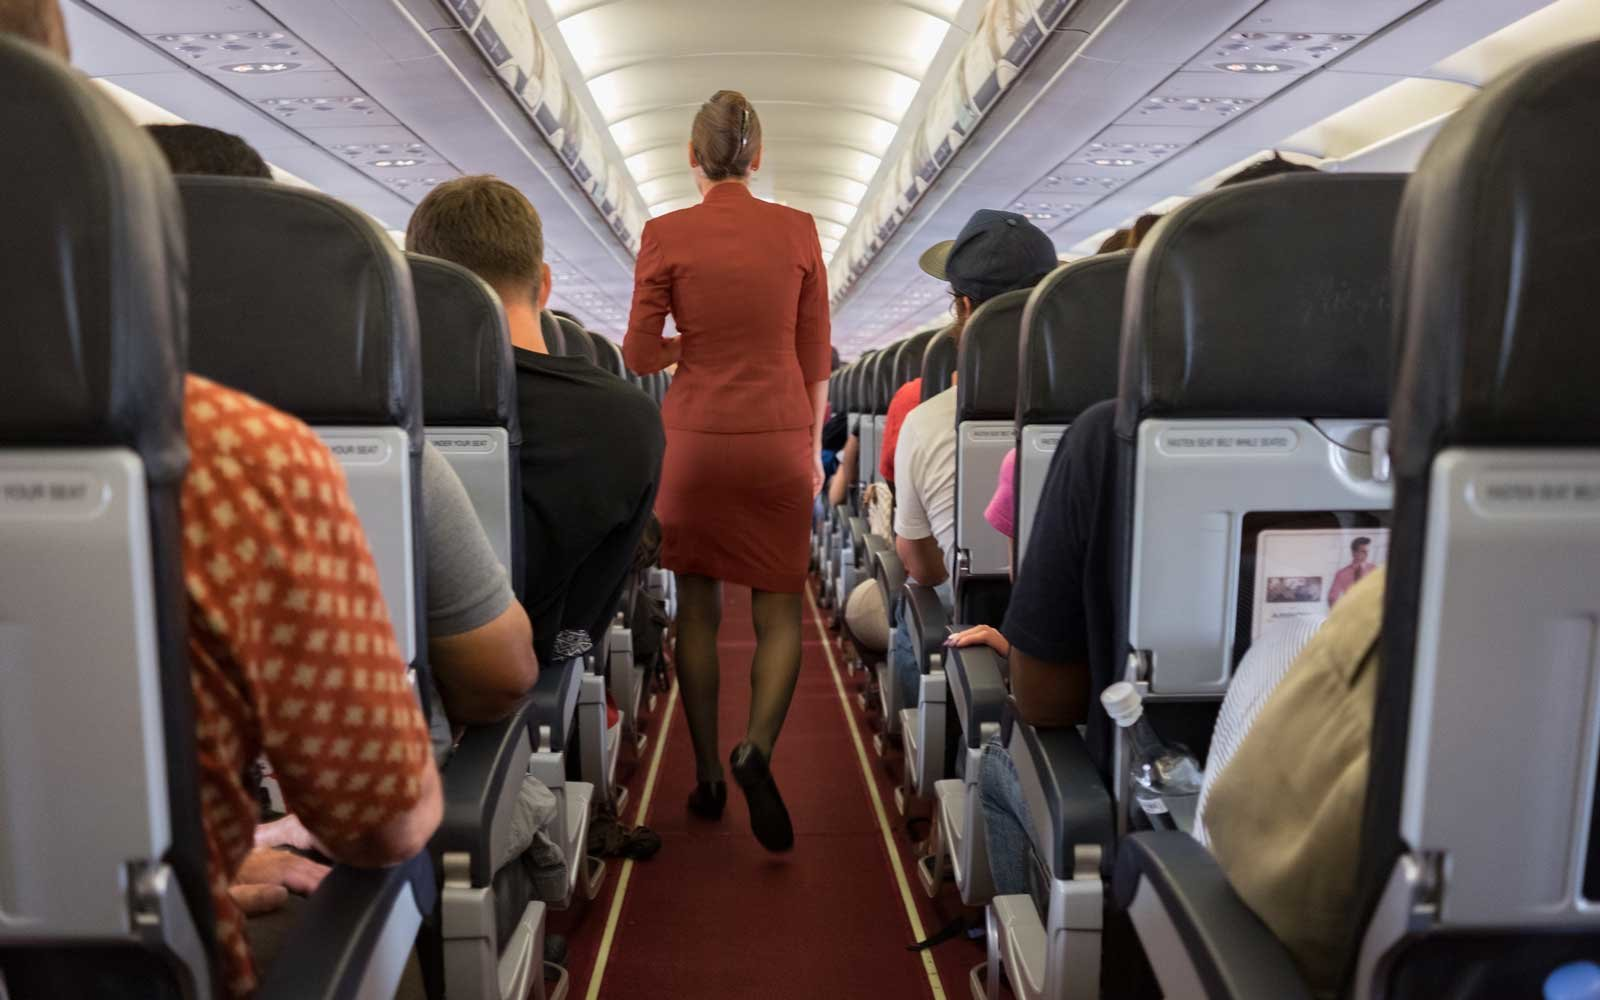 Pilots and Flight Attendants Reveal 15 Secrets You Never Knew About Flying